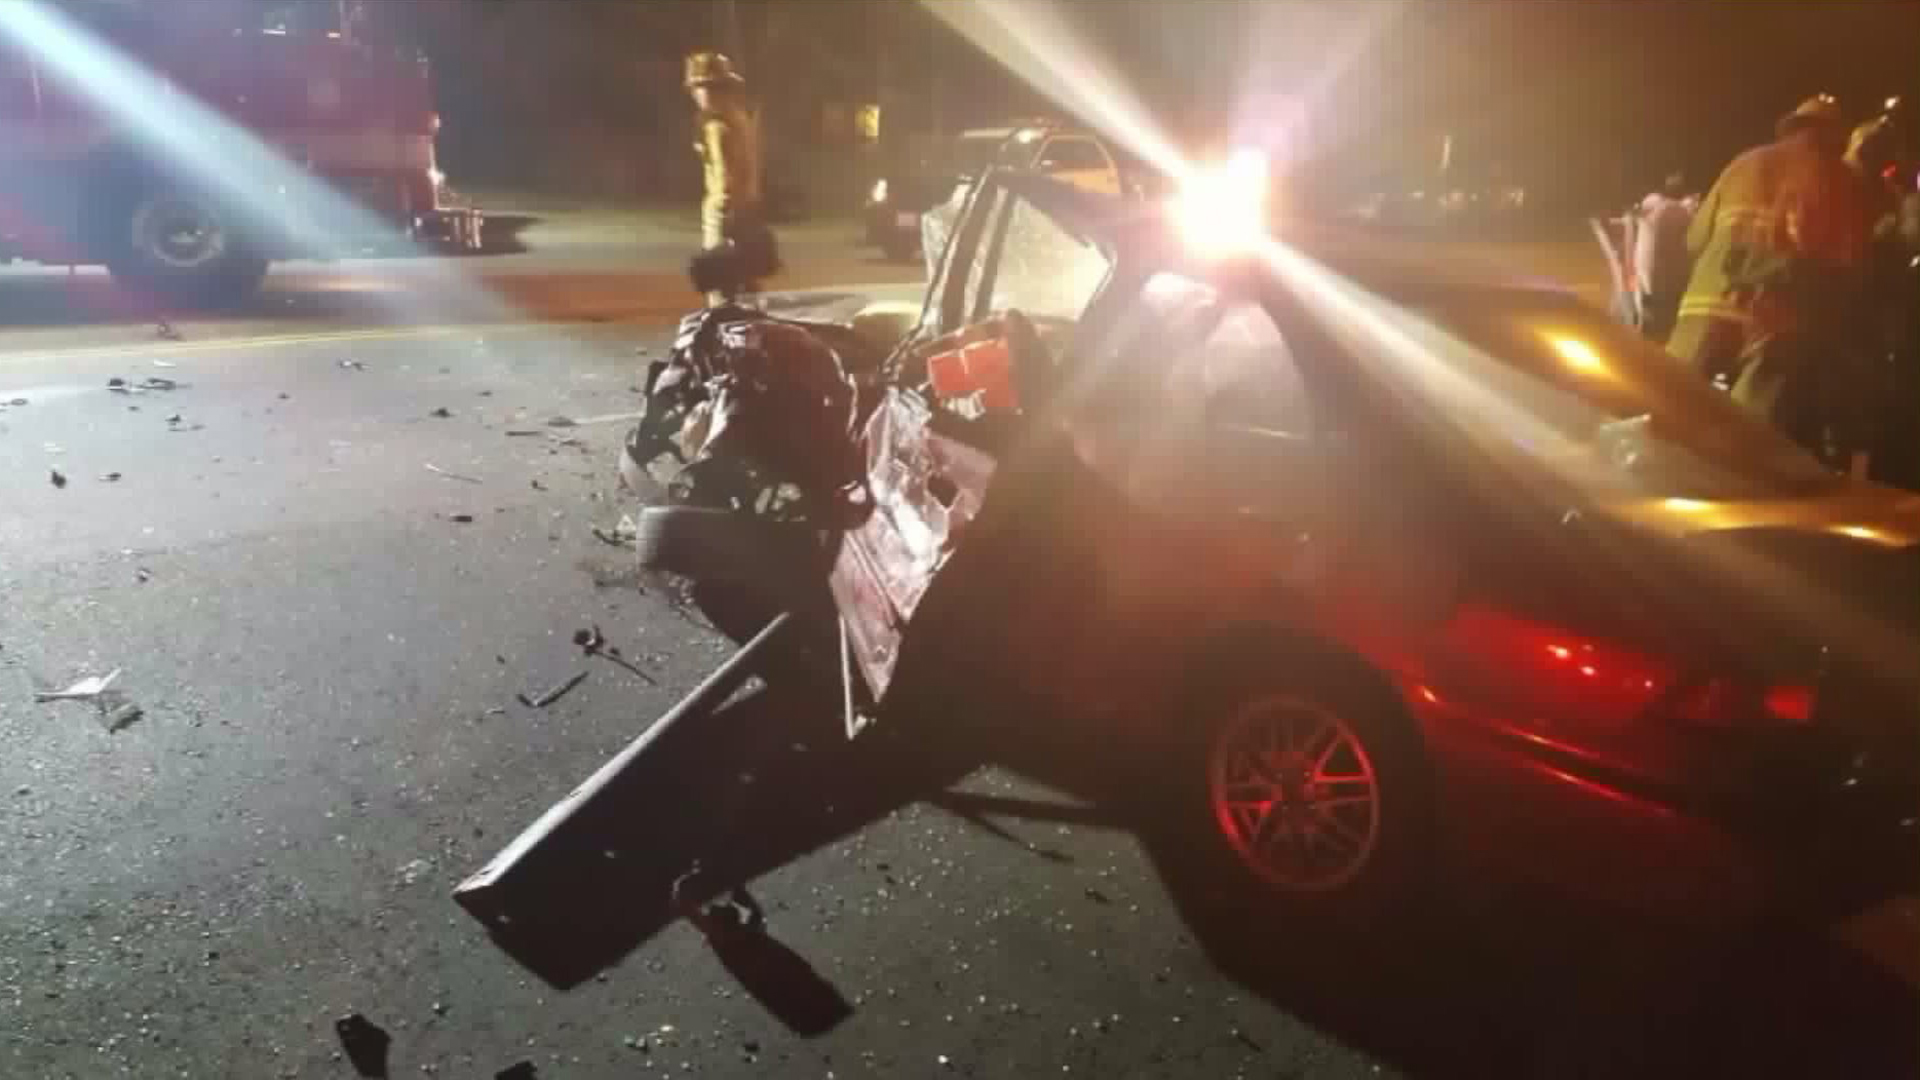 Authorities respond to a head-on crash in Valley Glen on May 26, 2017. (Courtesy: Simon Sarkissian)